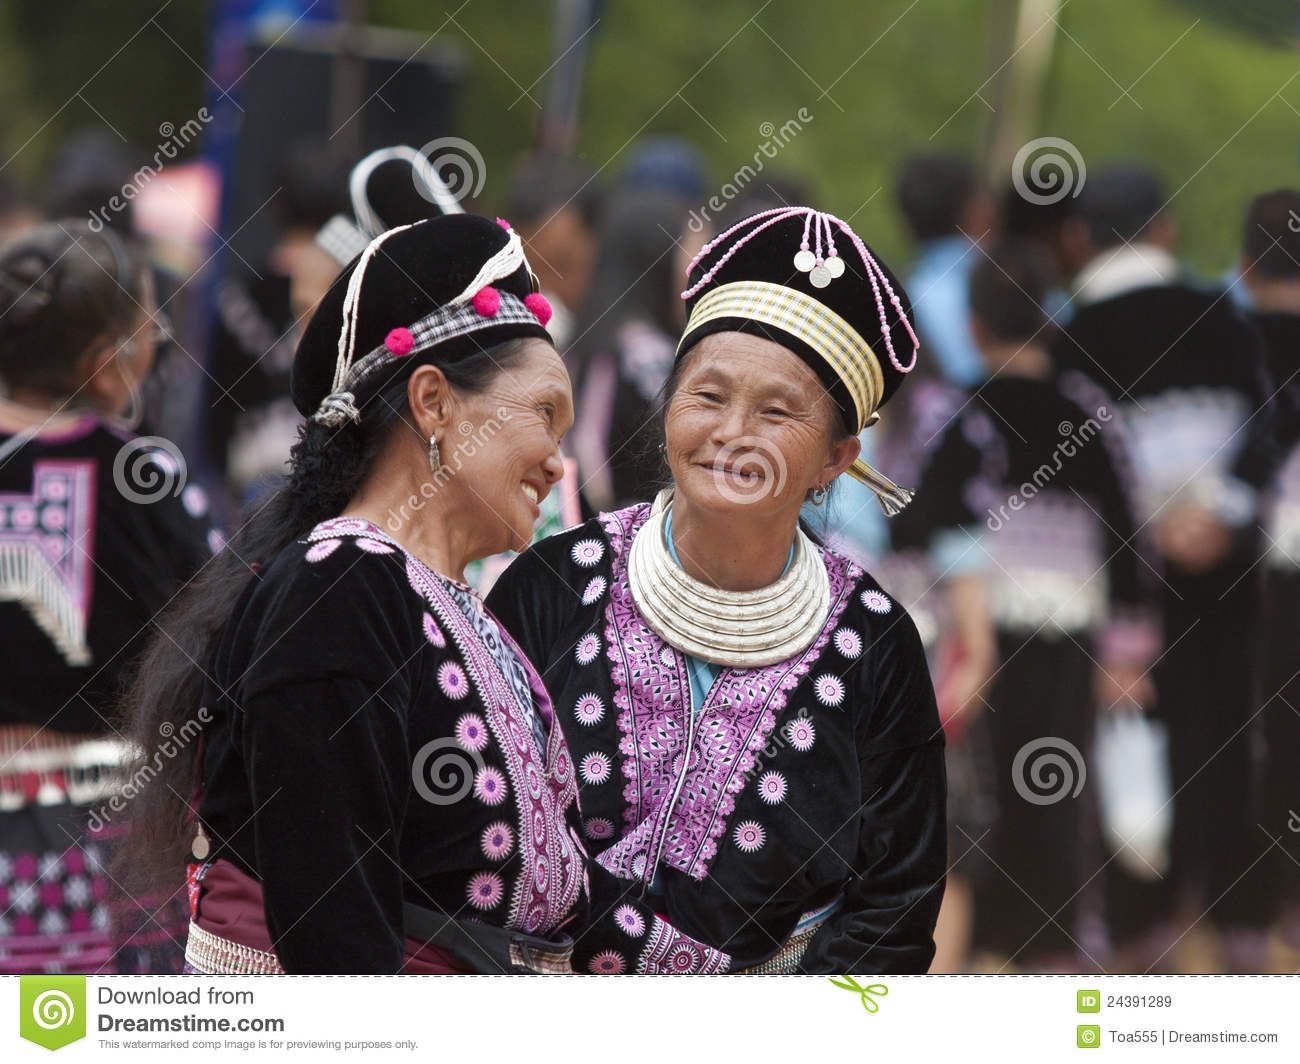 Hmong Hill Tribe women in traditional costumes